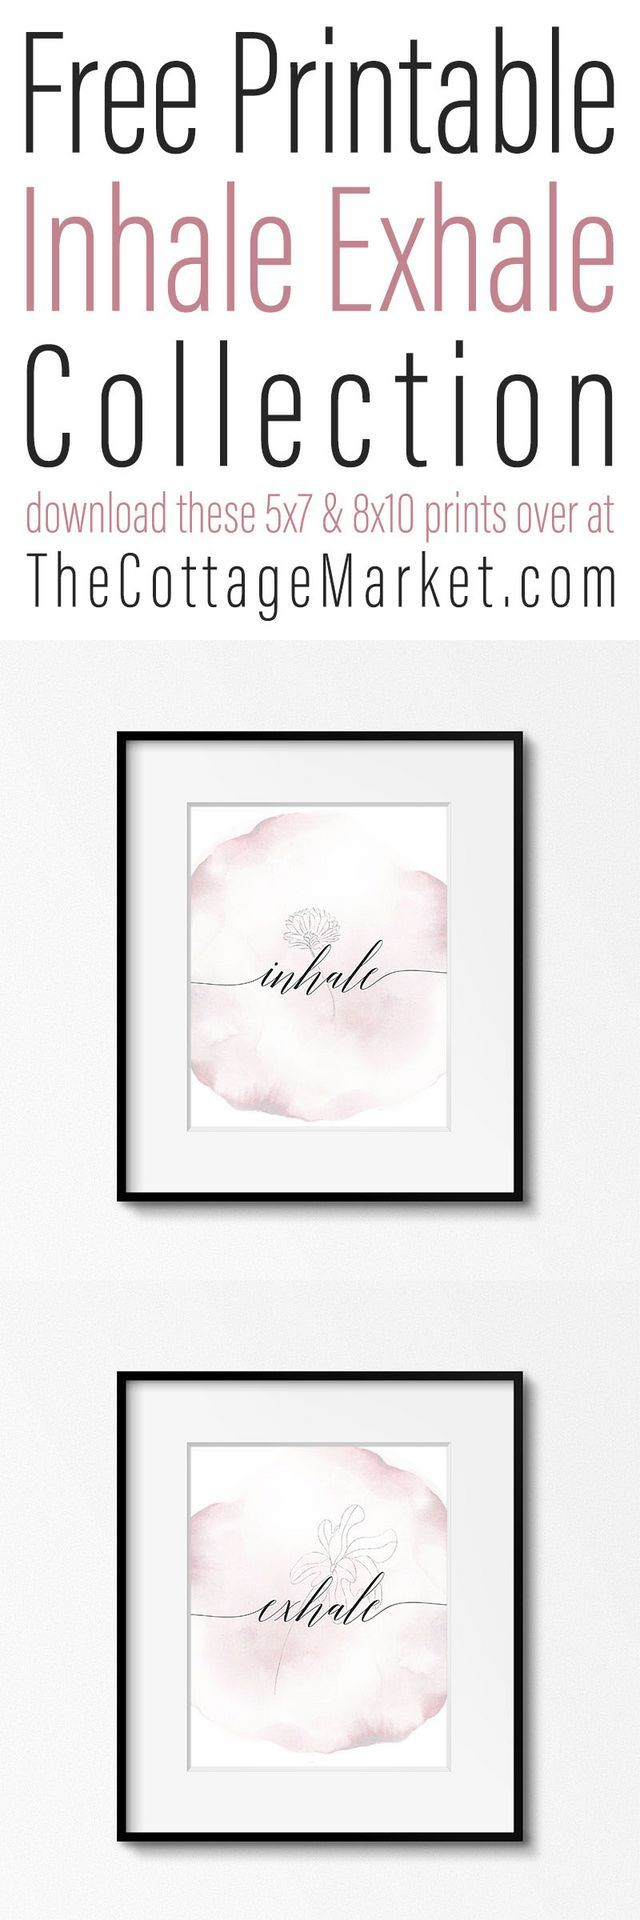 Free Printable Inhale Exhale Collection - The Cottage Market